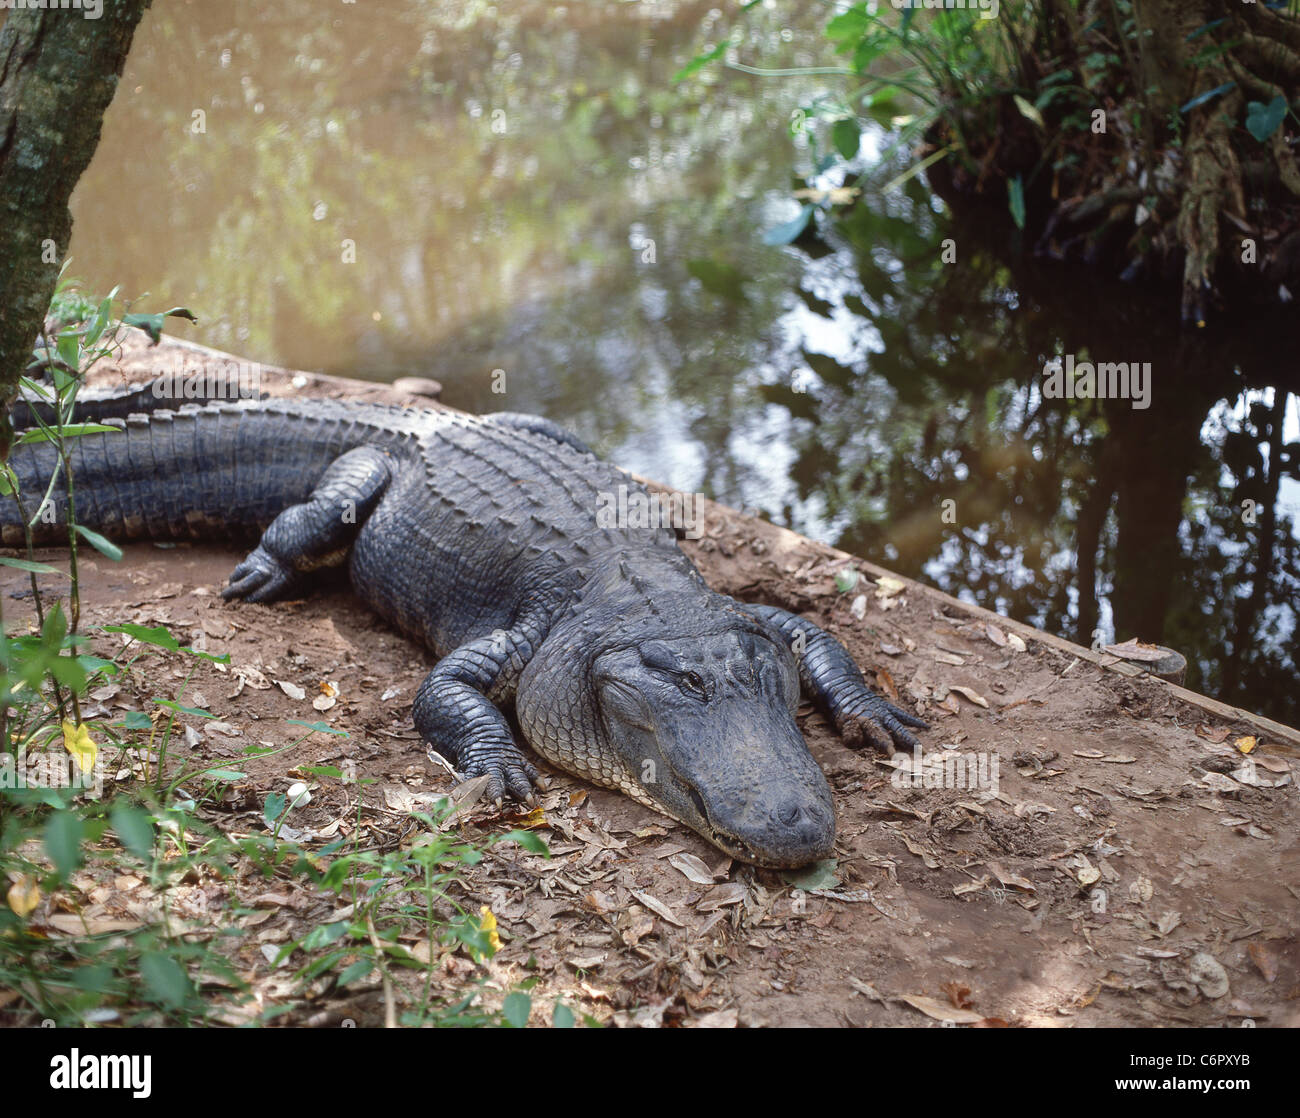 Alligators resting by creek, Everglades National Park, Florida, United States of America - Stock Image